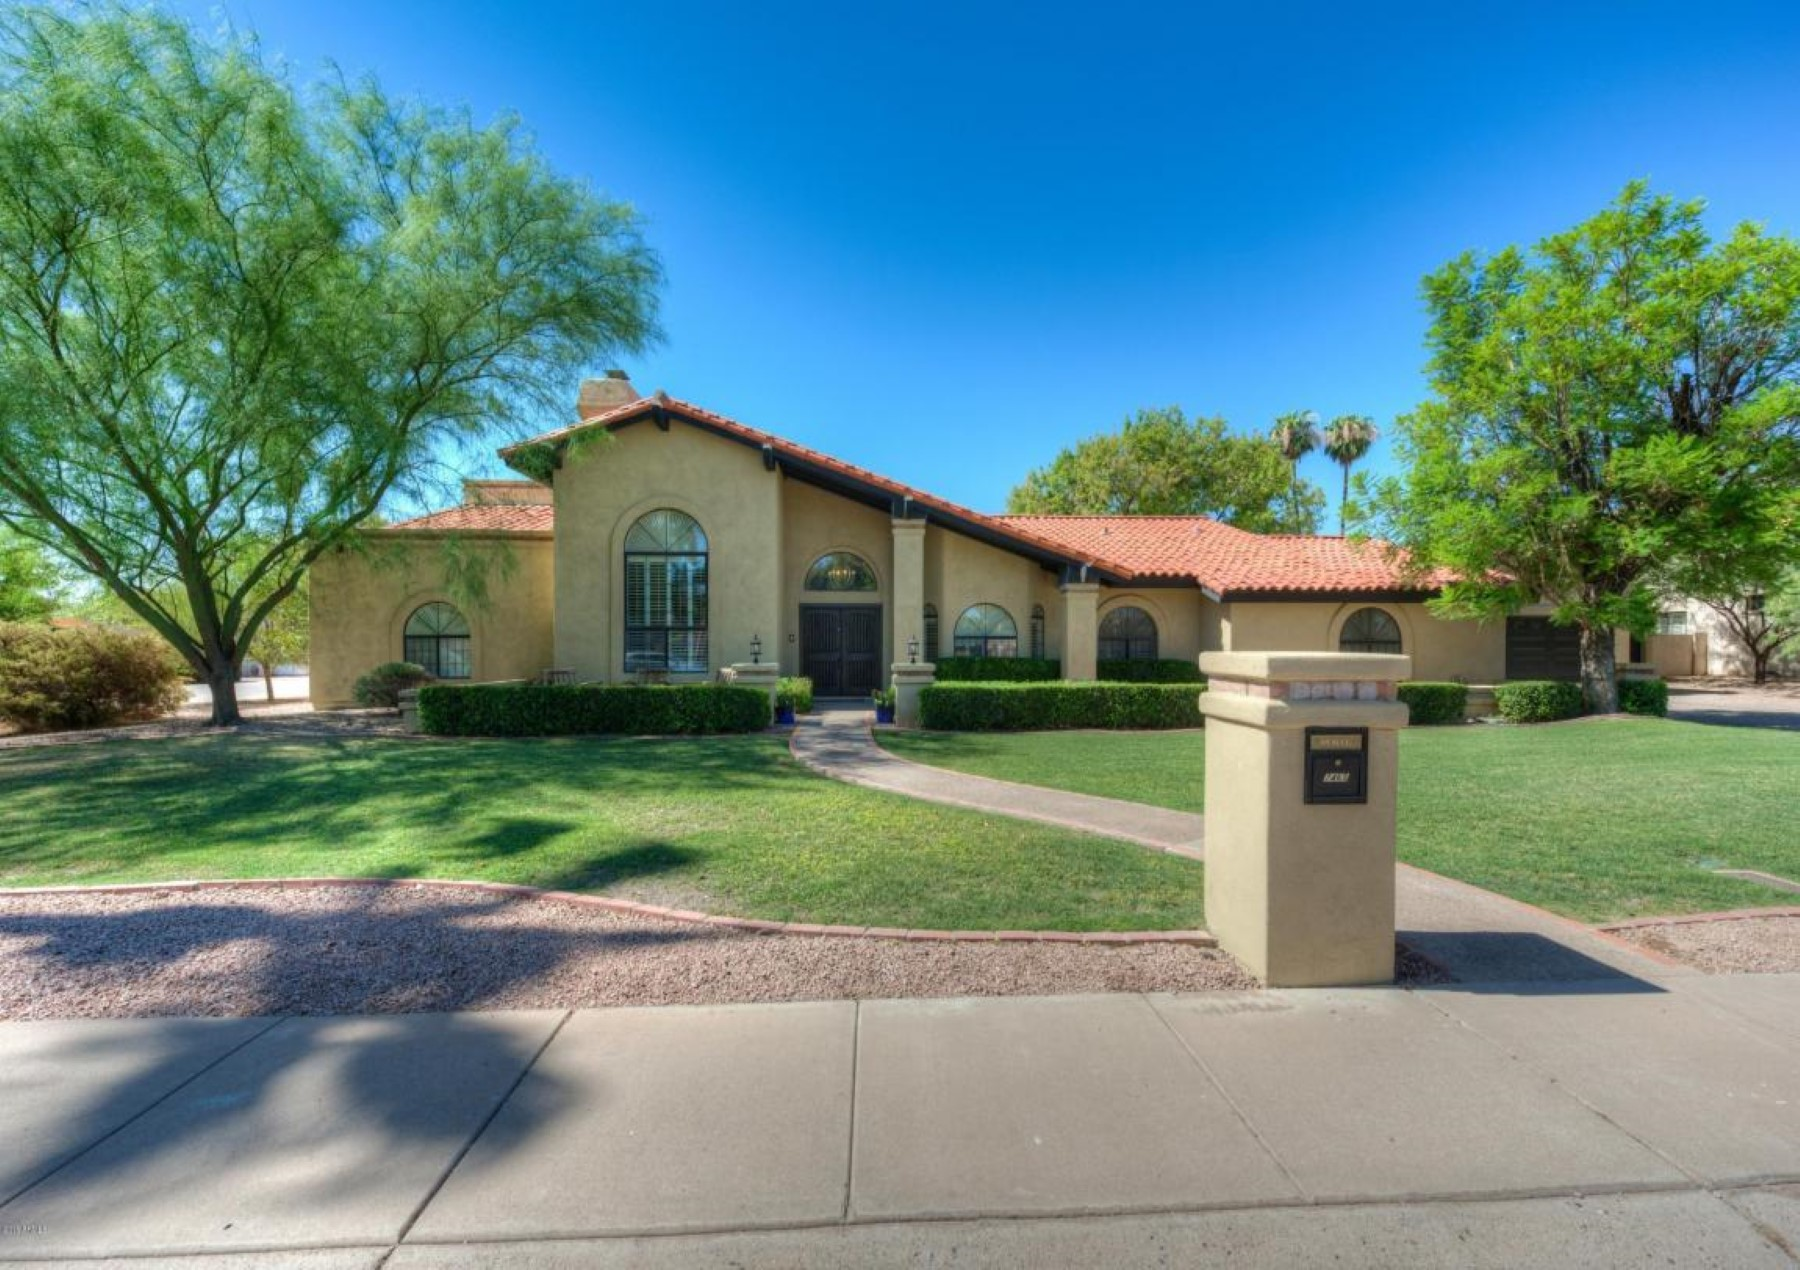 rentals property at Absolutely beautiful home in a private and extremely quiet cul-de-sac